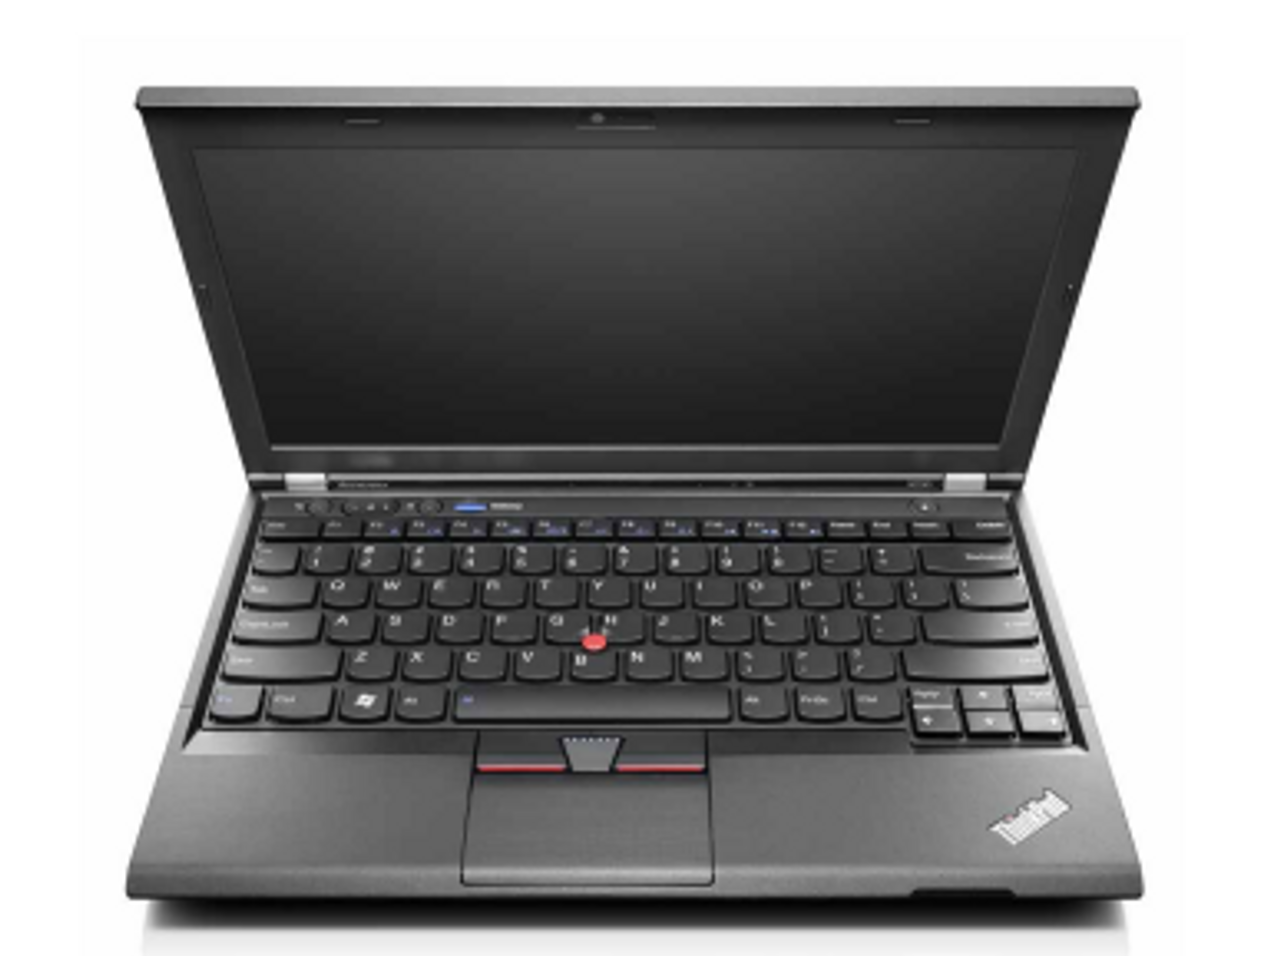 Lenovo ThinkPad X230 - Core i5 - 8GB - incl new battery and SSD.